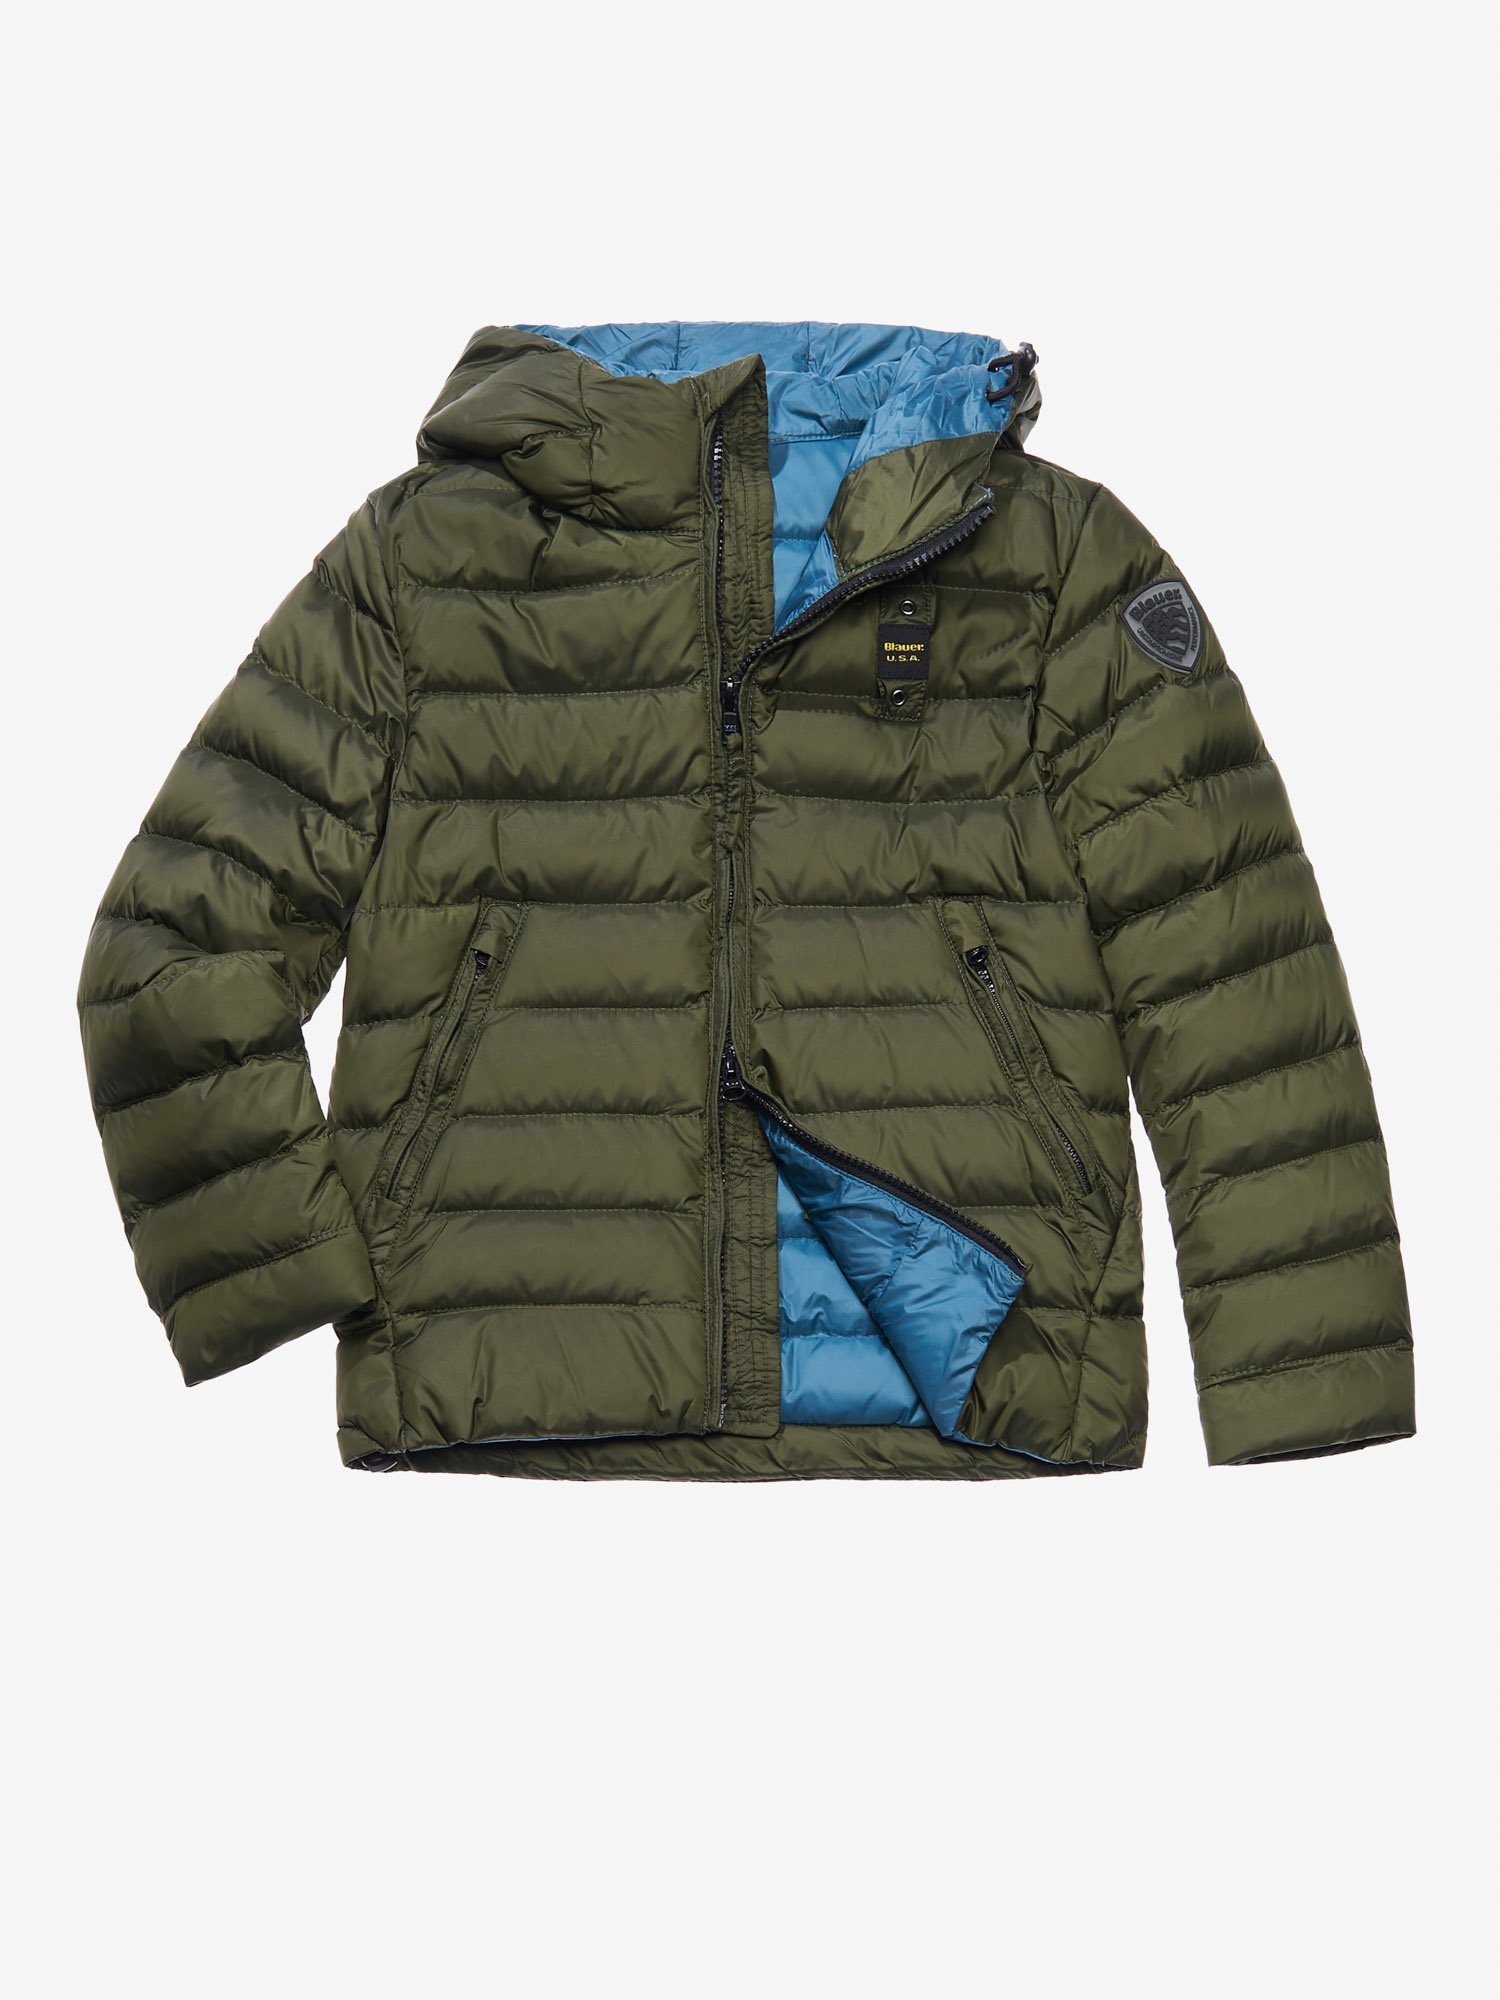 Blauer - ACHILLE DOWN JACKET WITH HOOD - Alga Kombu Inside Green Hydro - Blauer